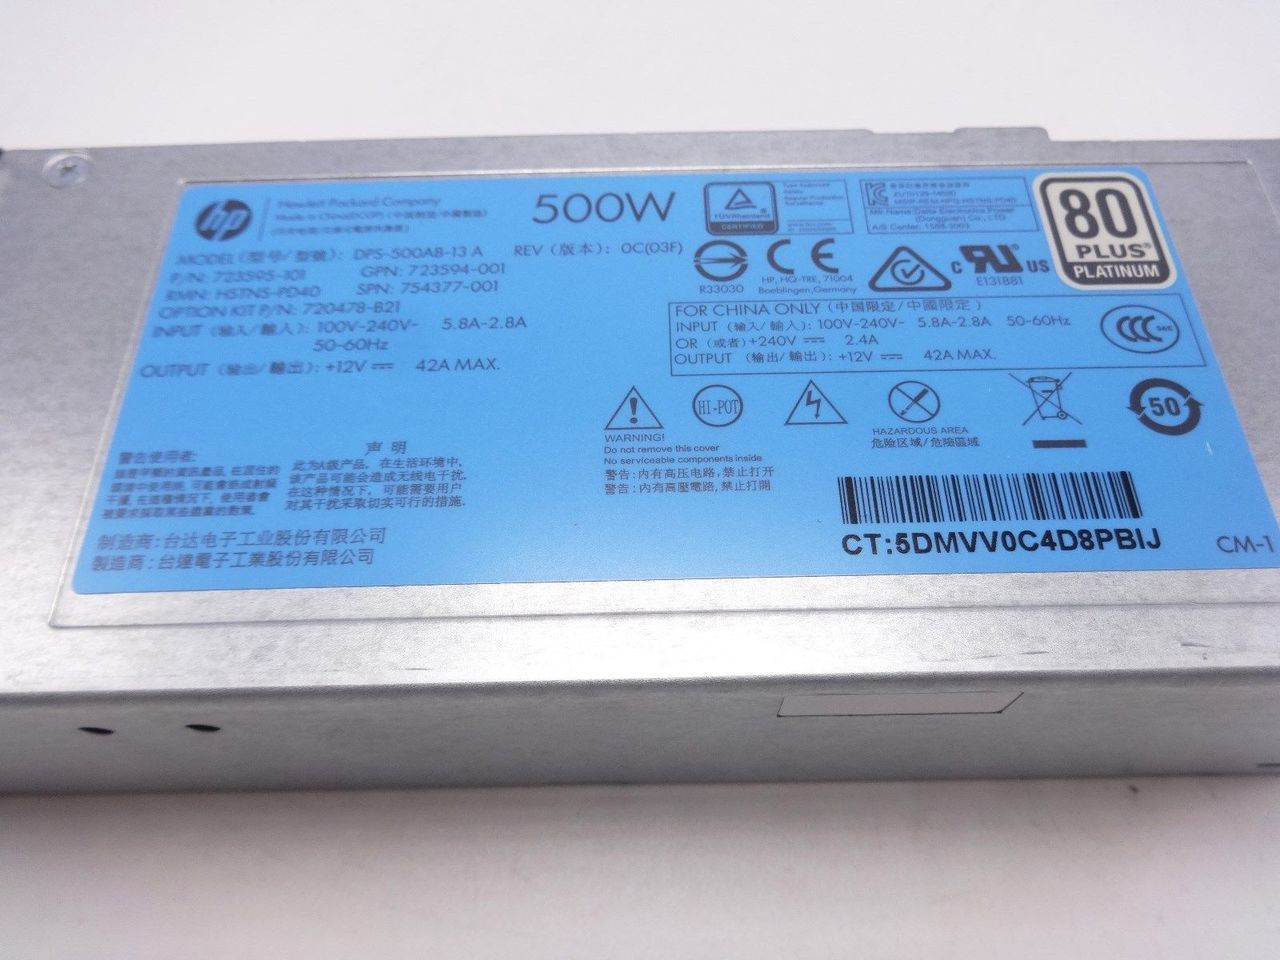 HPE Hot-Plug / Redundant - Plug-In Module 500 Power Supply 720478-B21 Silver